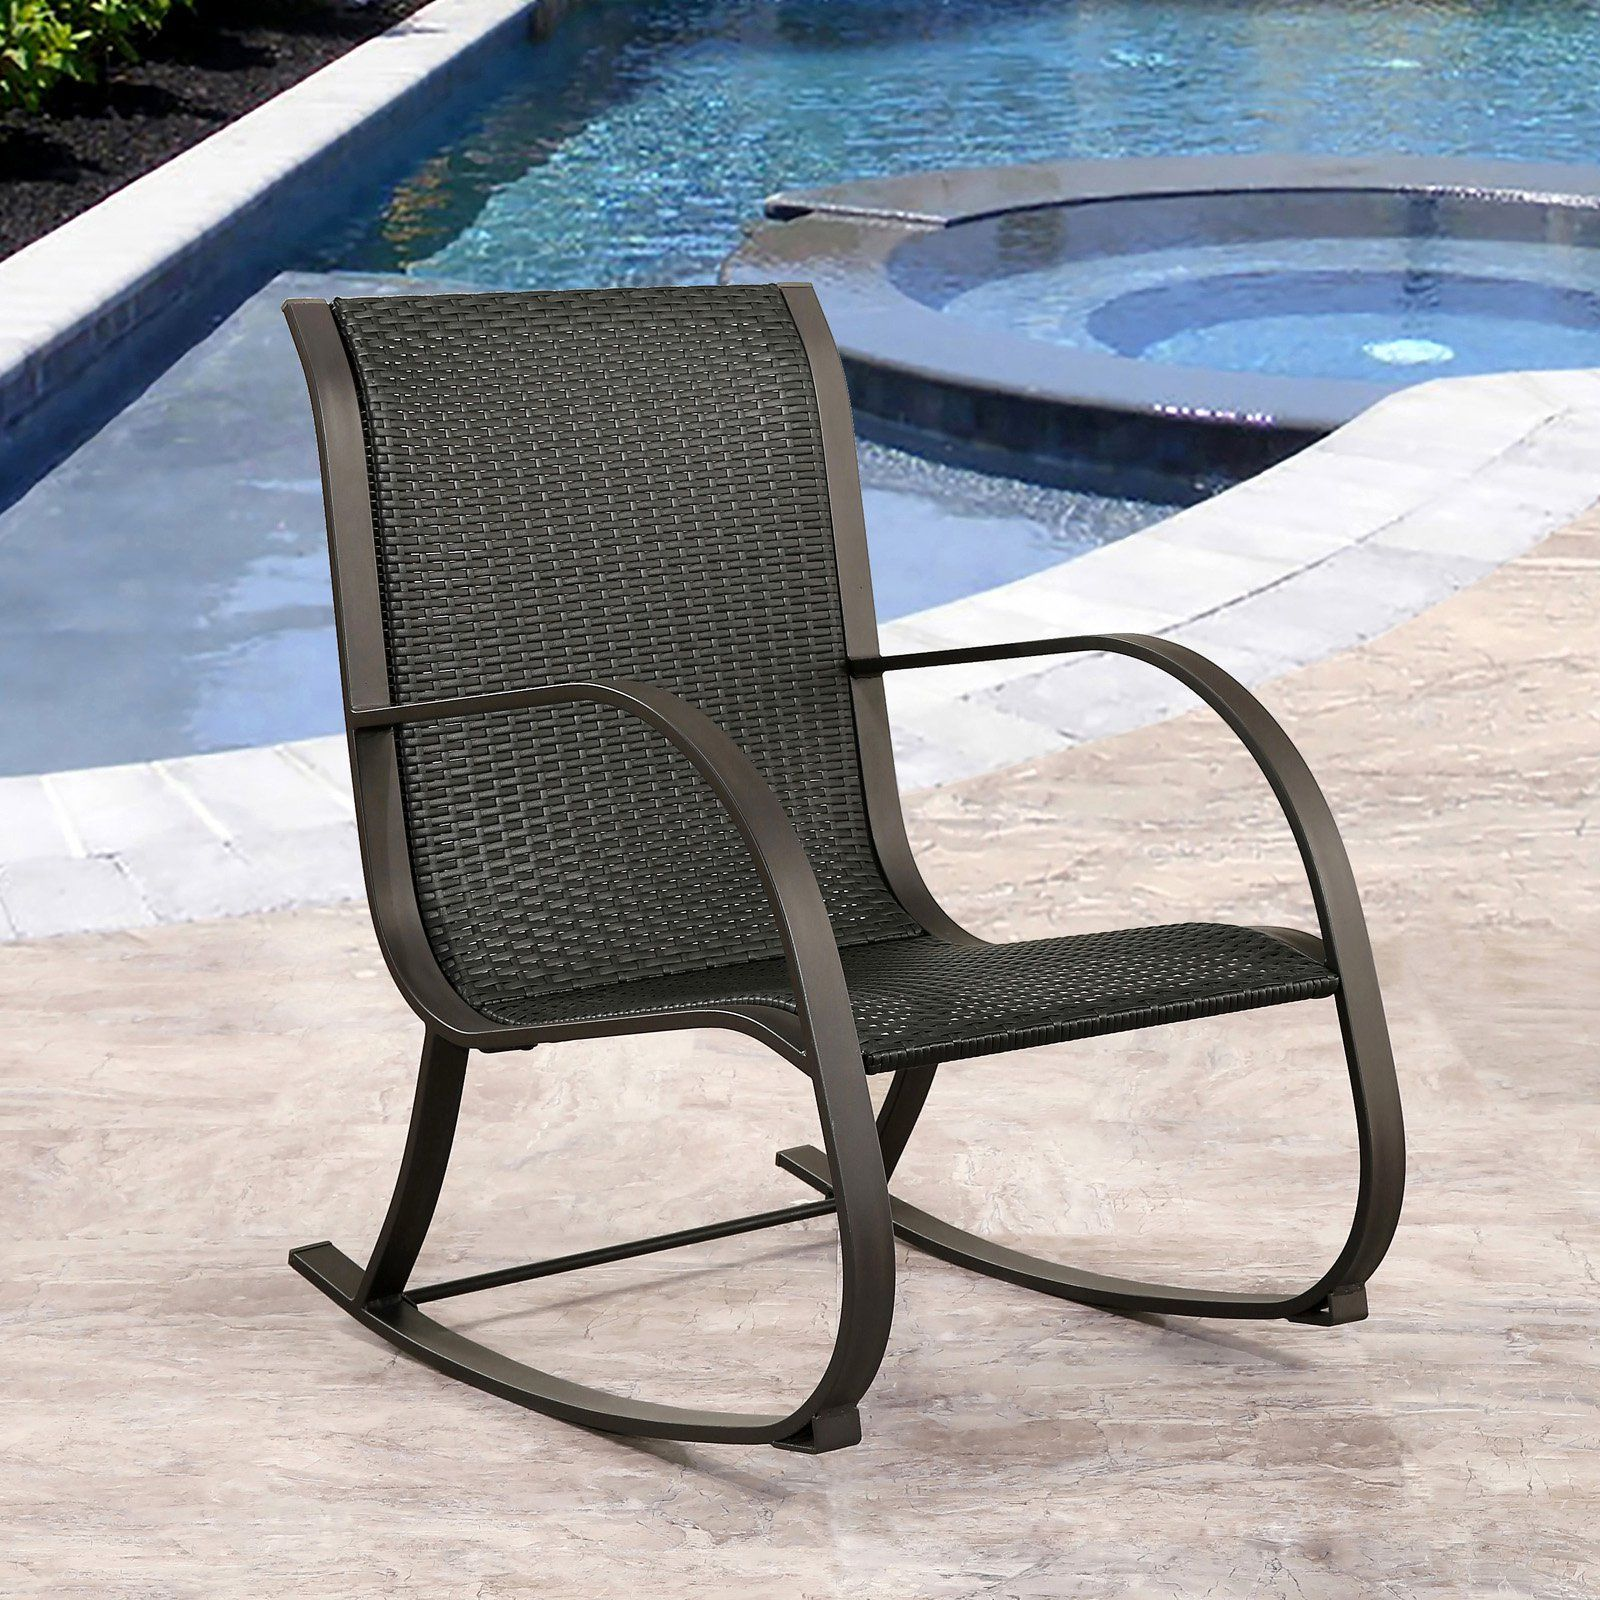 Abbyson Living Kenley Wicker Outdoor Rocking Chair | from hayneedle.com